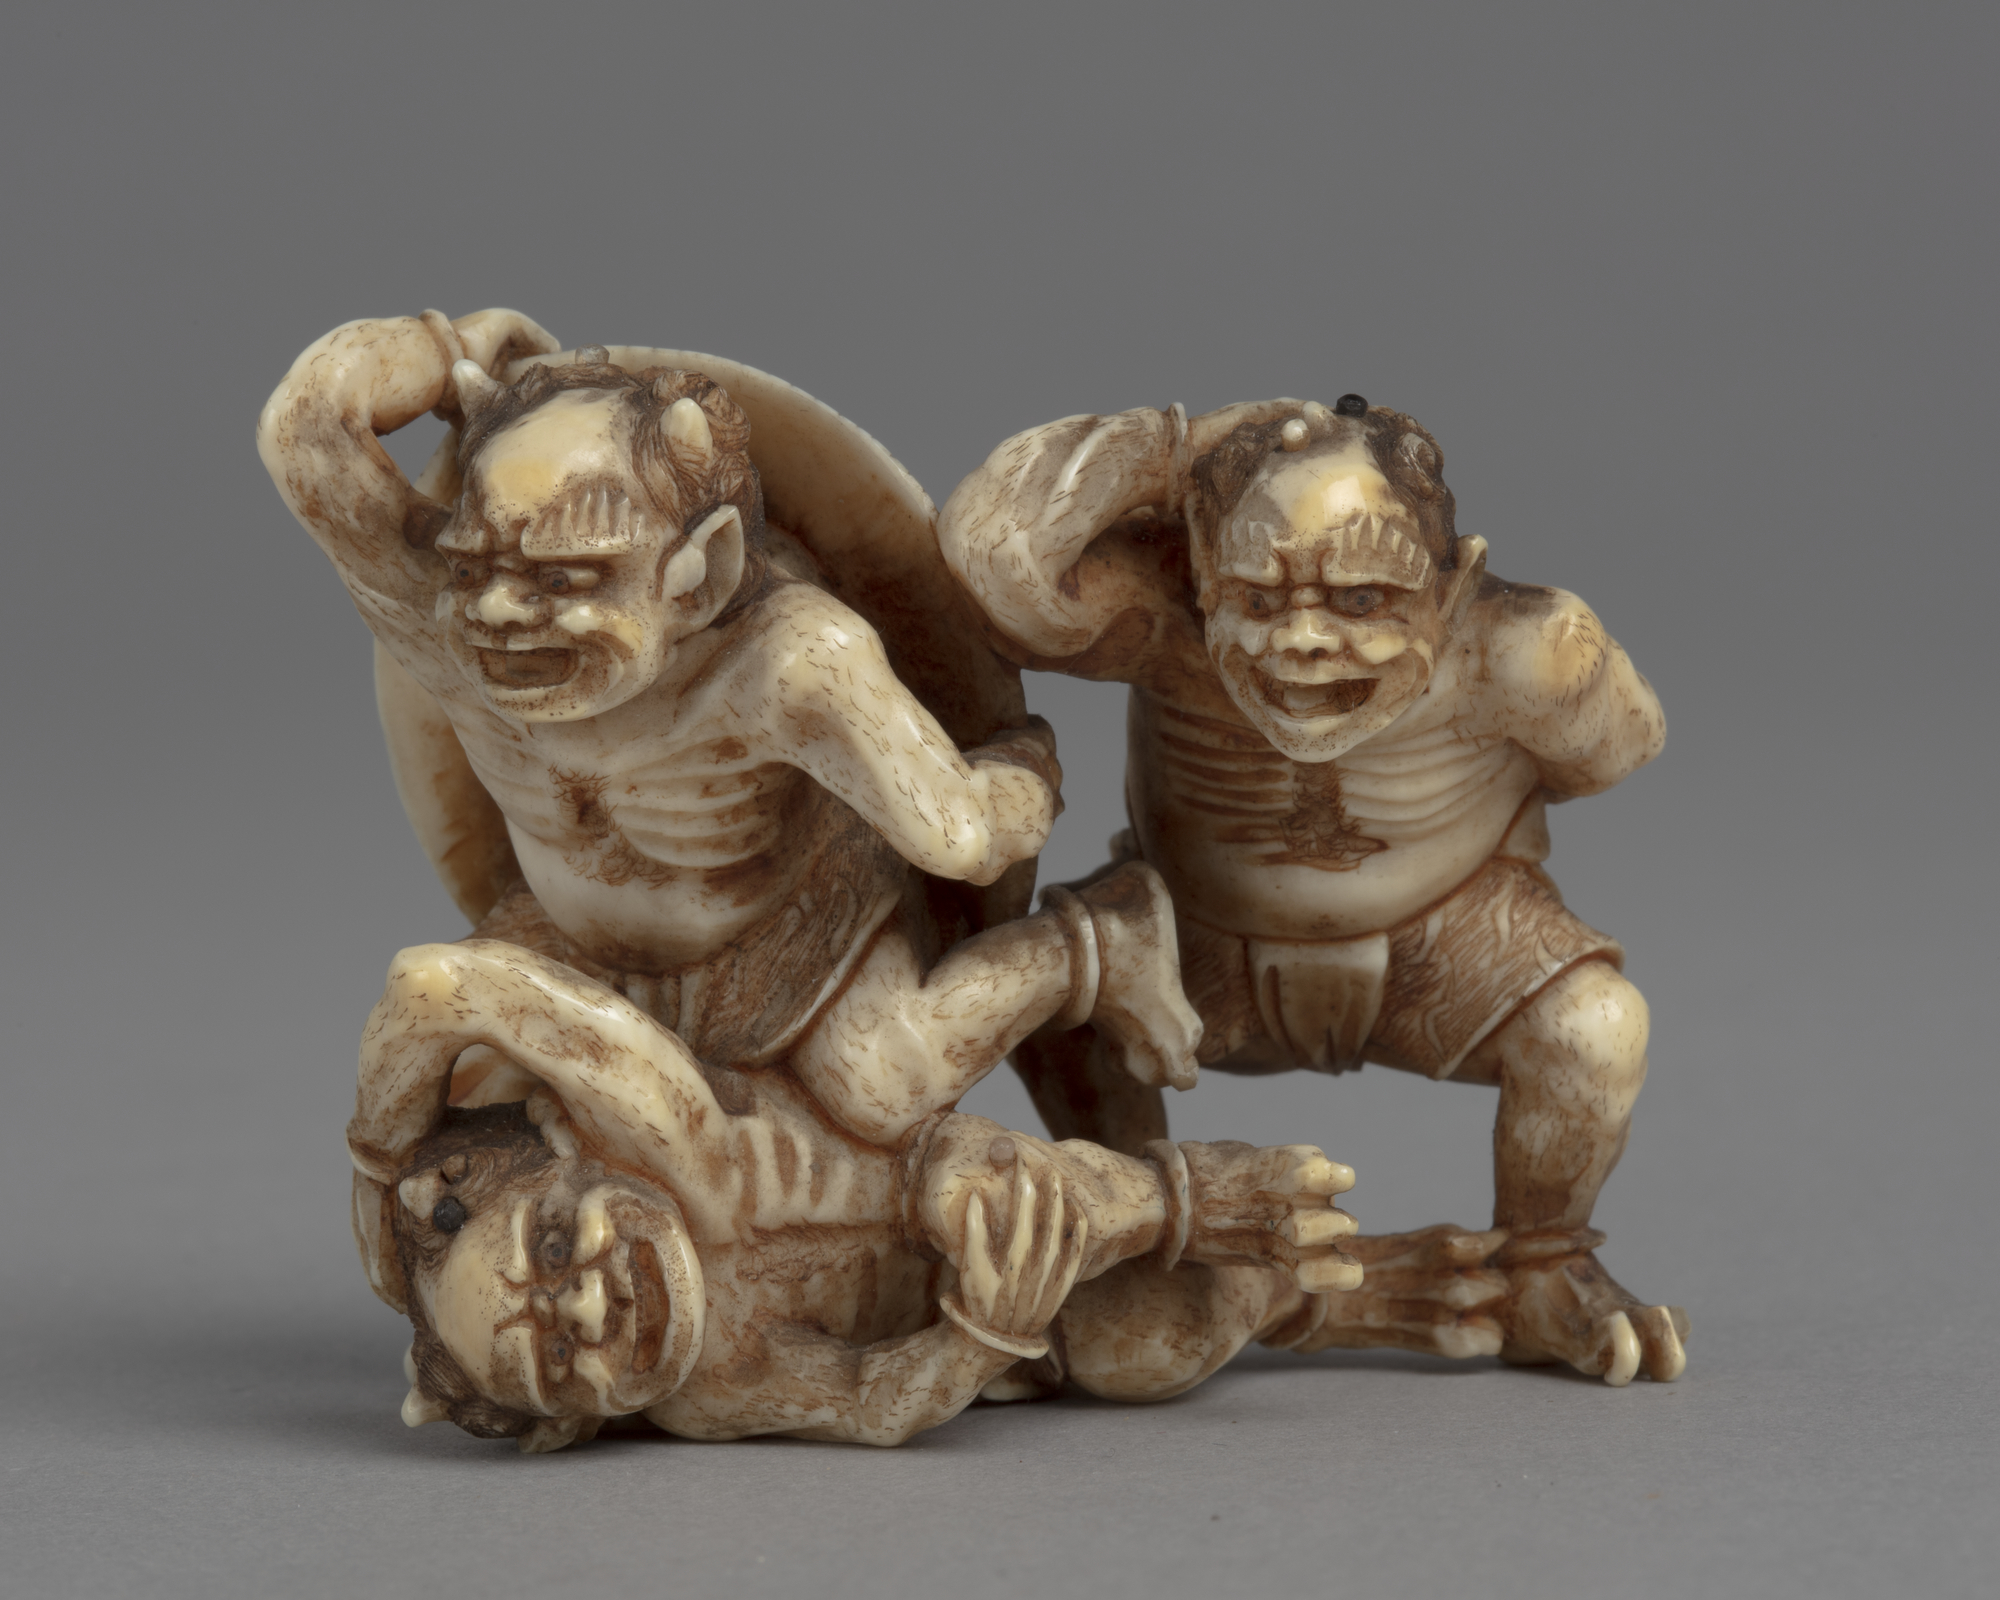 A Japanese ivory okimono ornament with three demons cowering and running away from the soybeans being thrown at them.